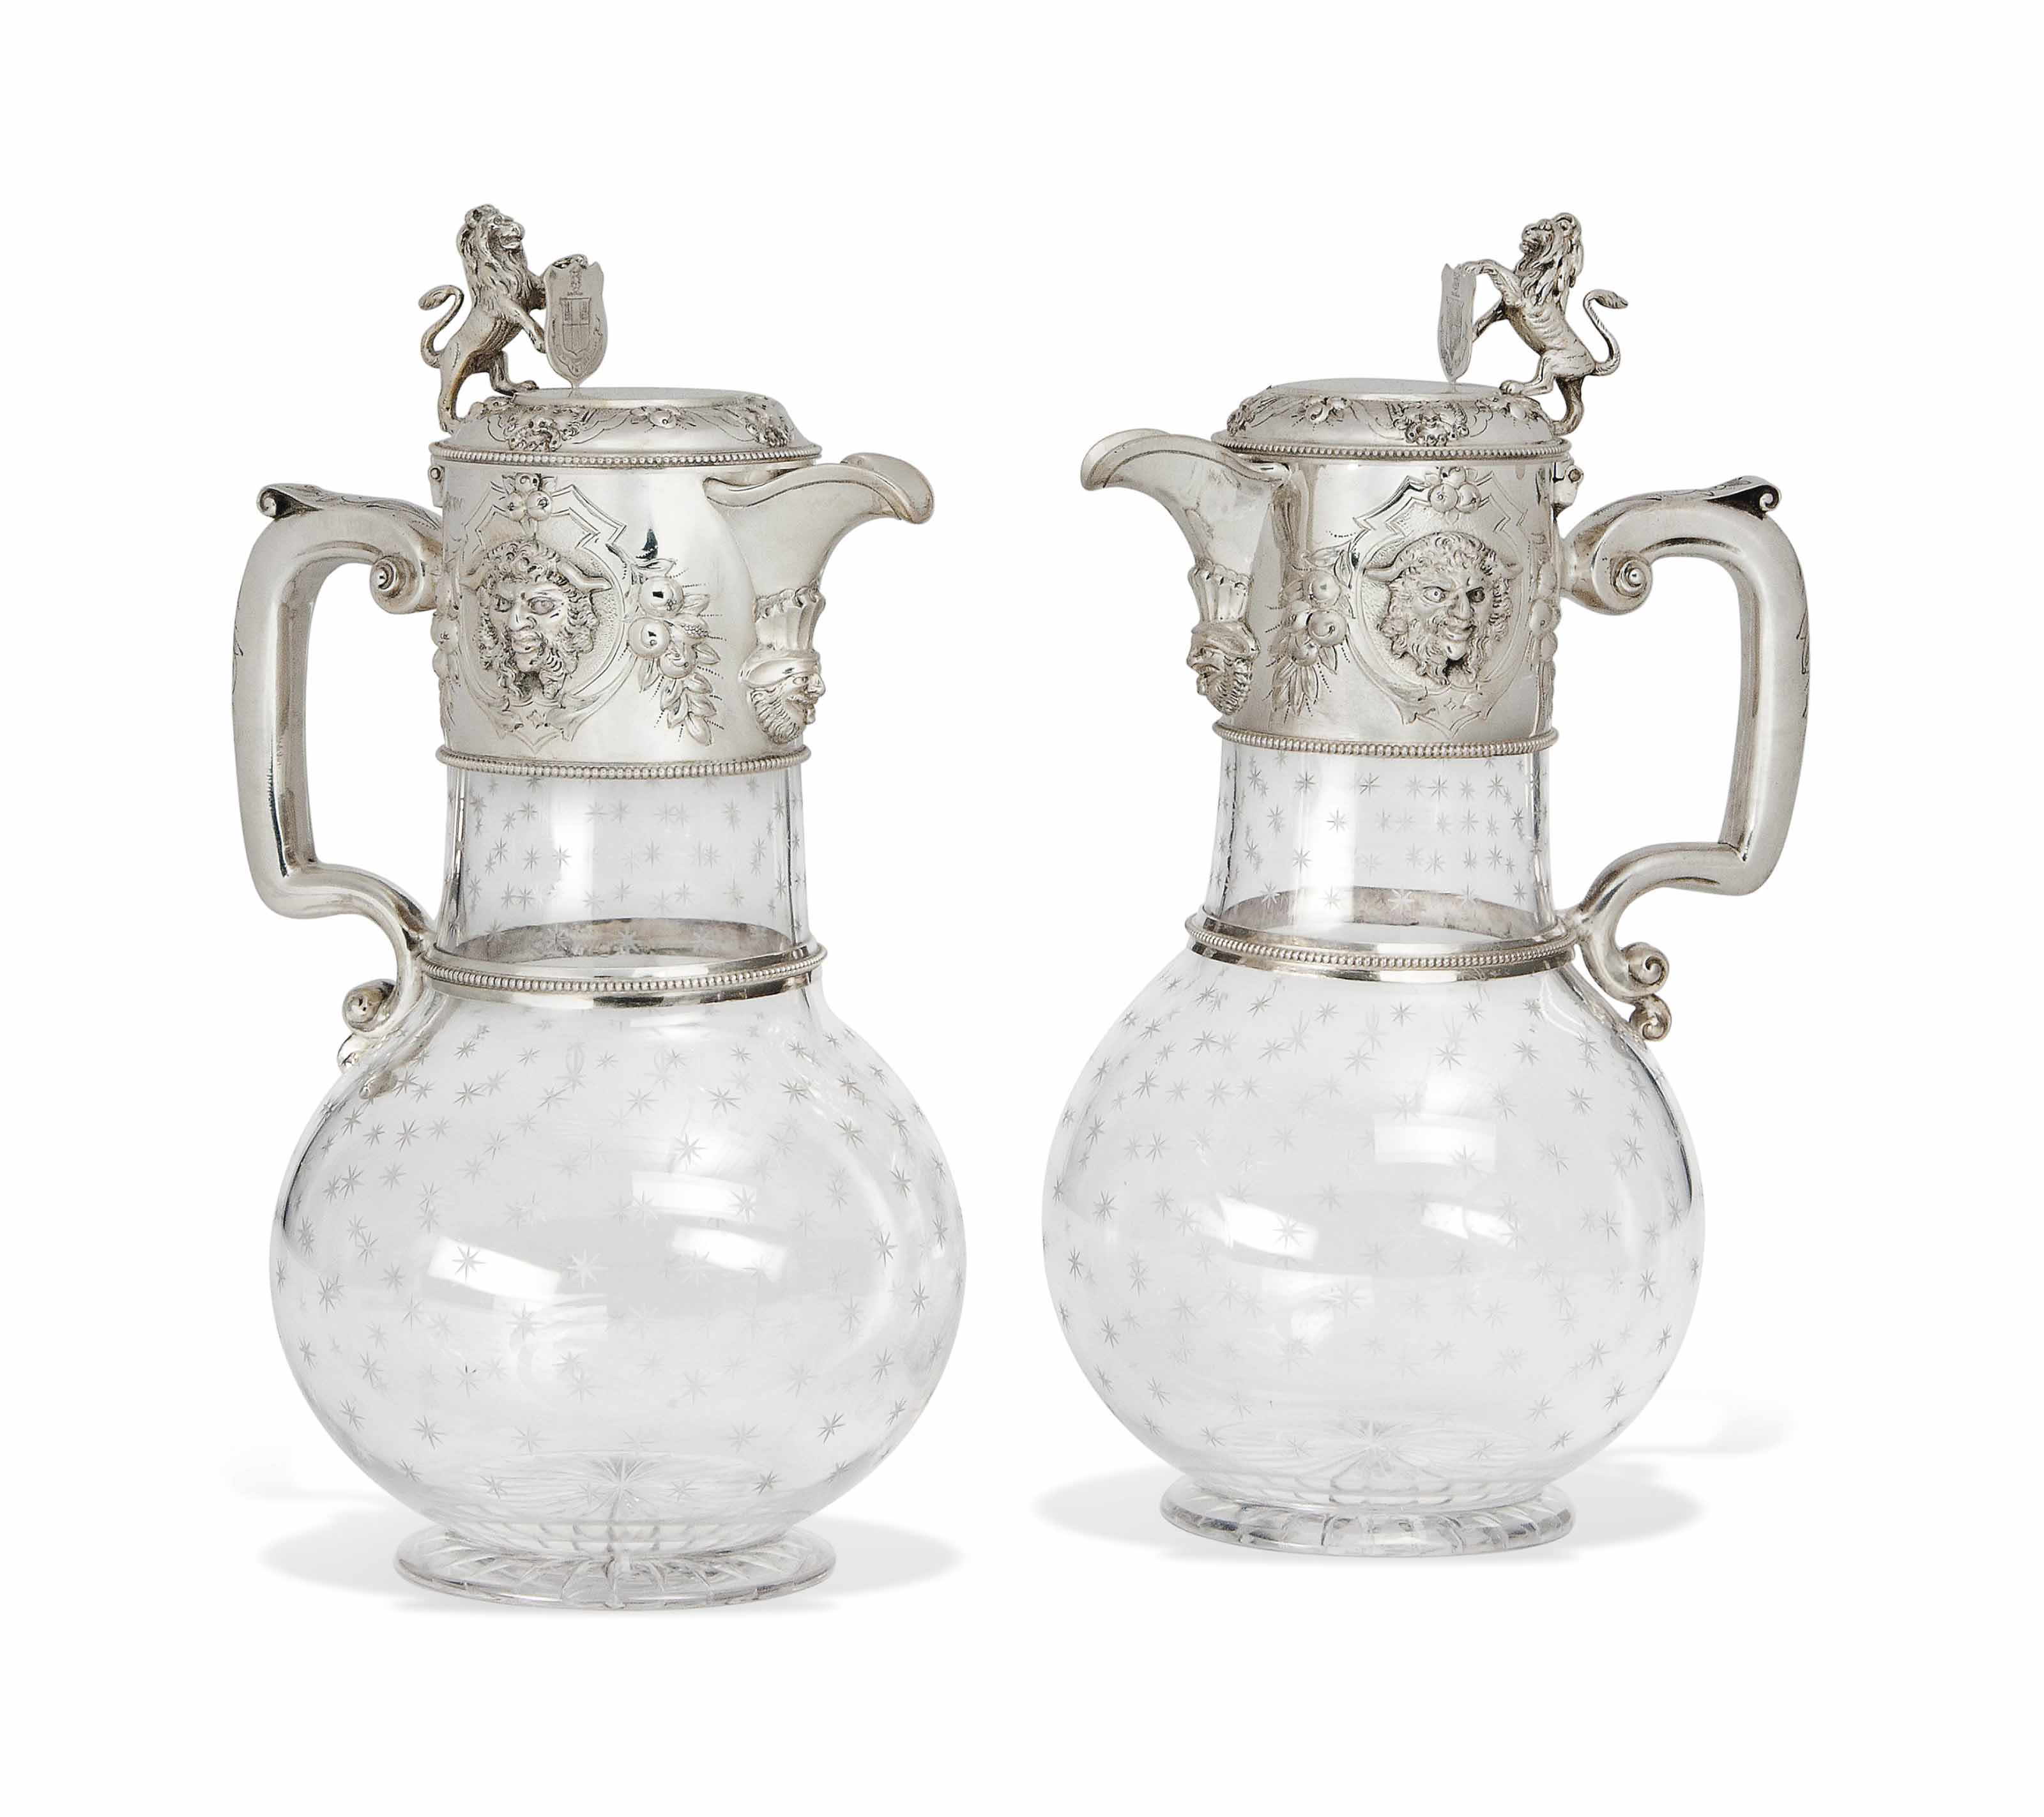 A PAIR OF VICTORIAN SILVER-MOUNTED GLASS CLARET JUGS